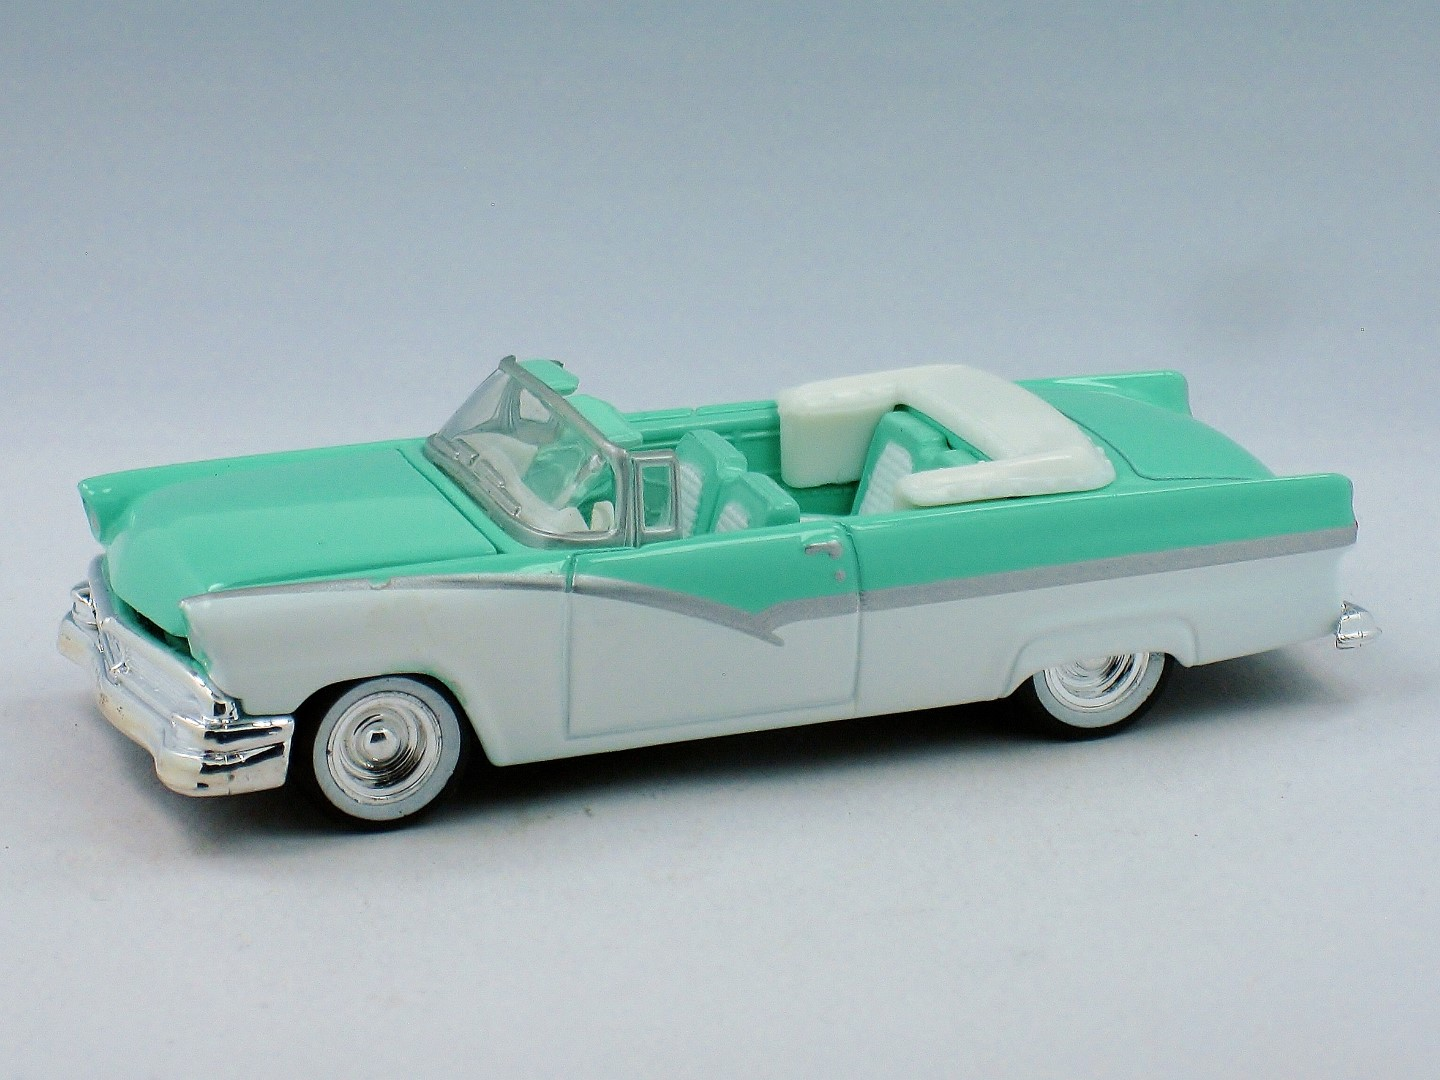 '56 Ford Fairlane Convertible